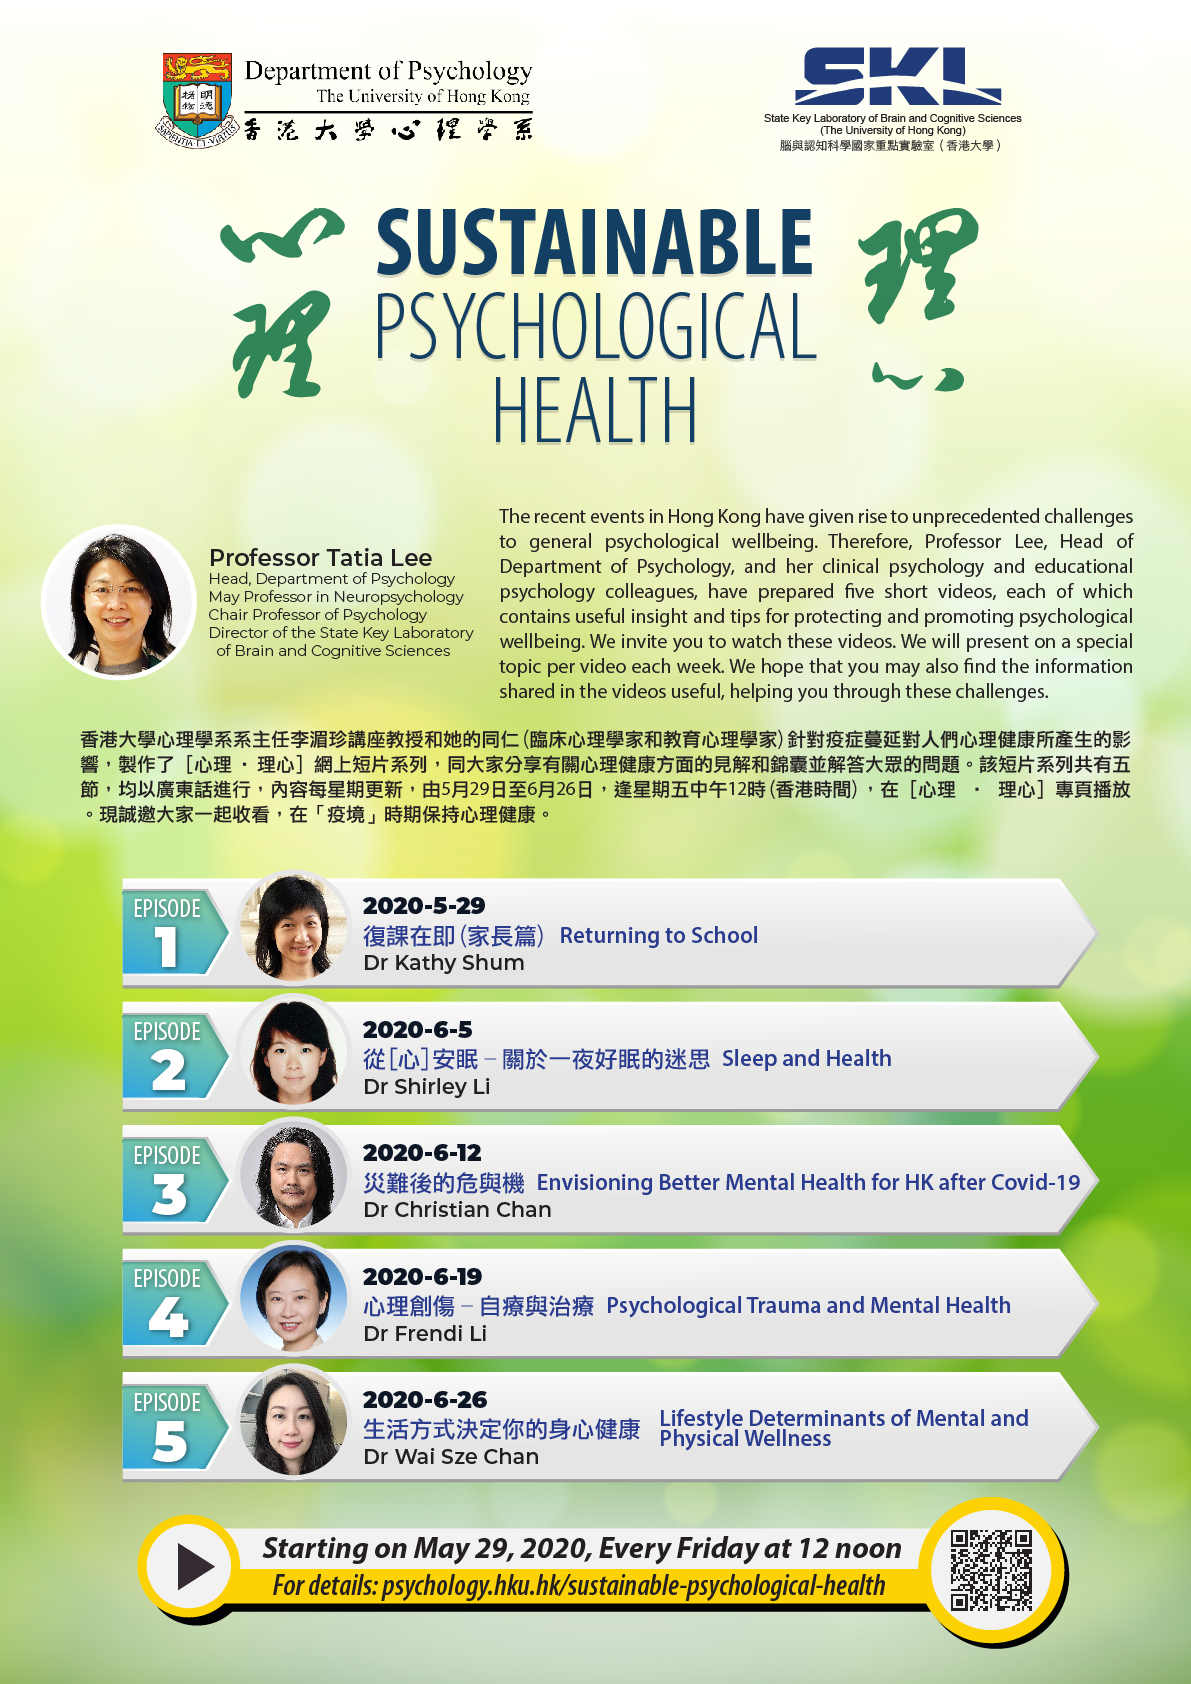 Online videos on Sustainable psychological Health